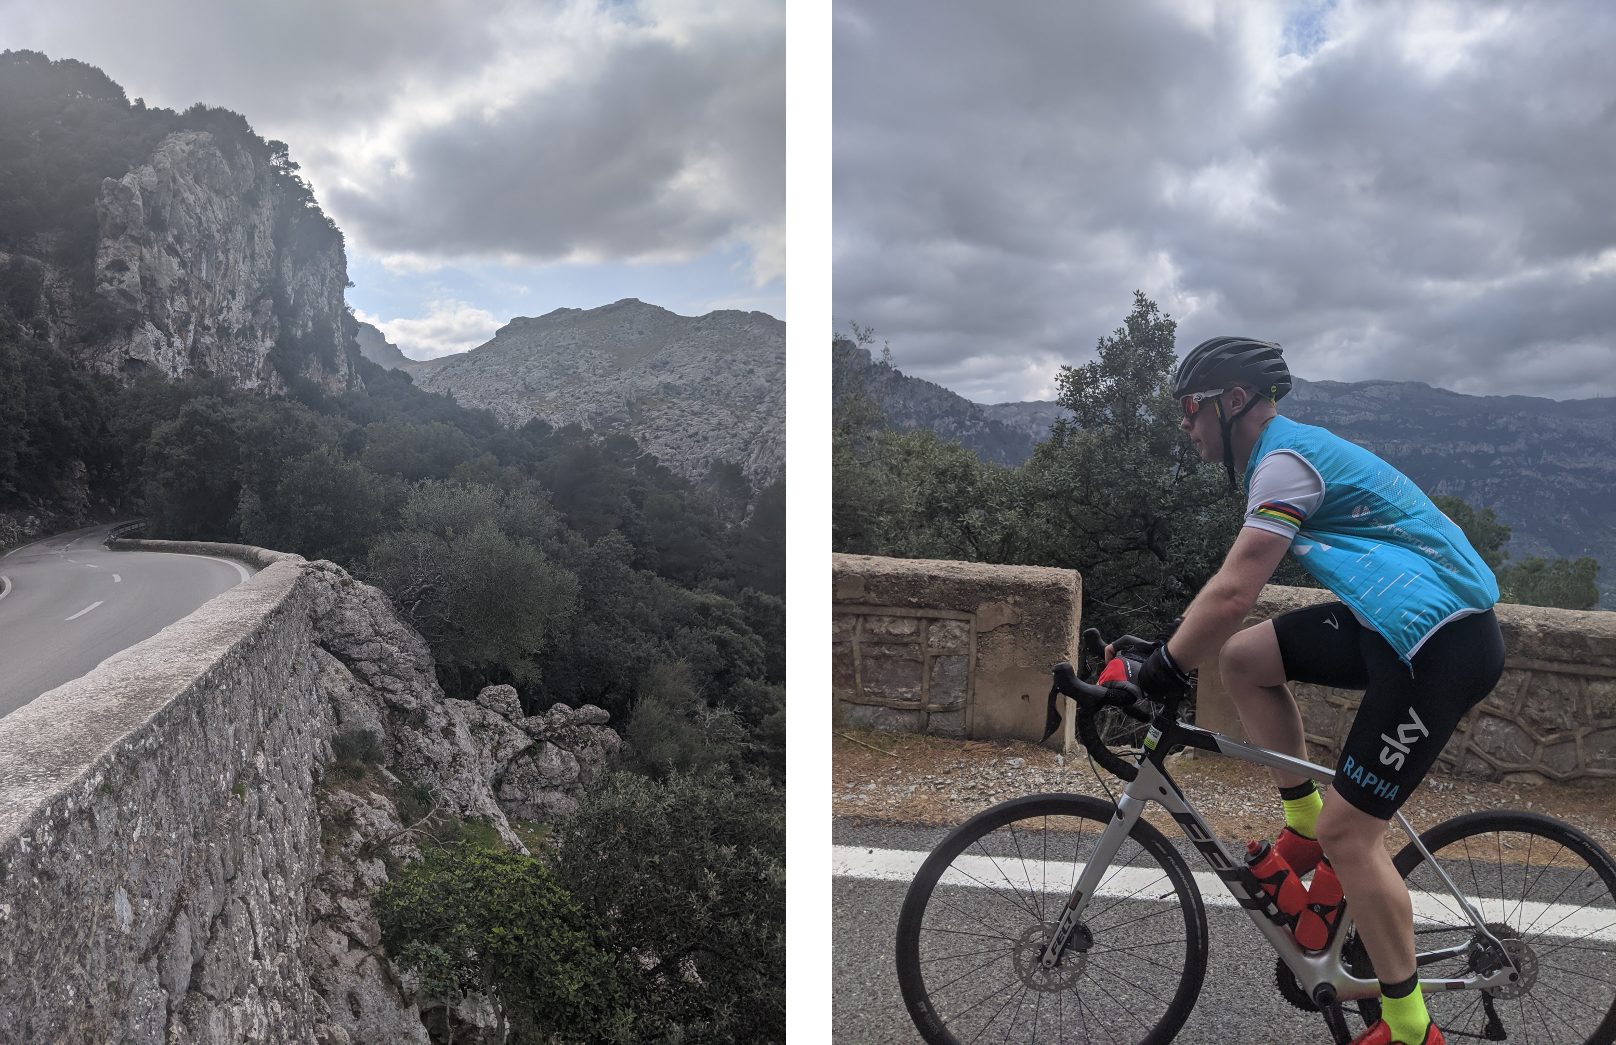 Riding up the Puig Major with Barry on the right